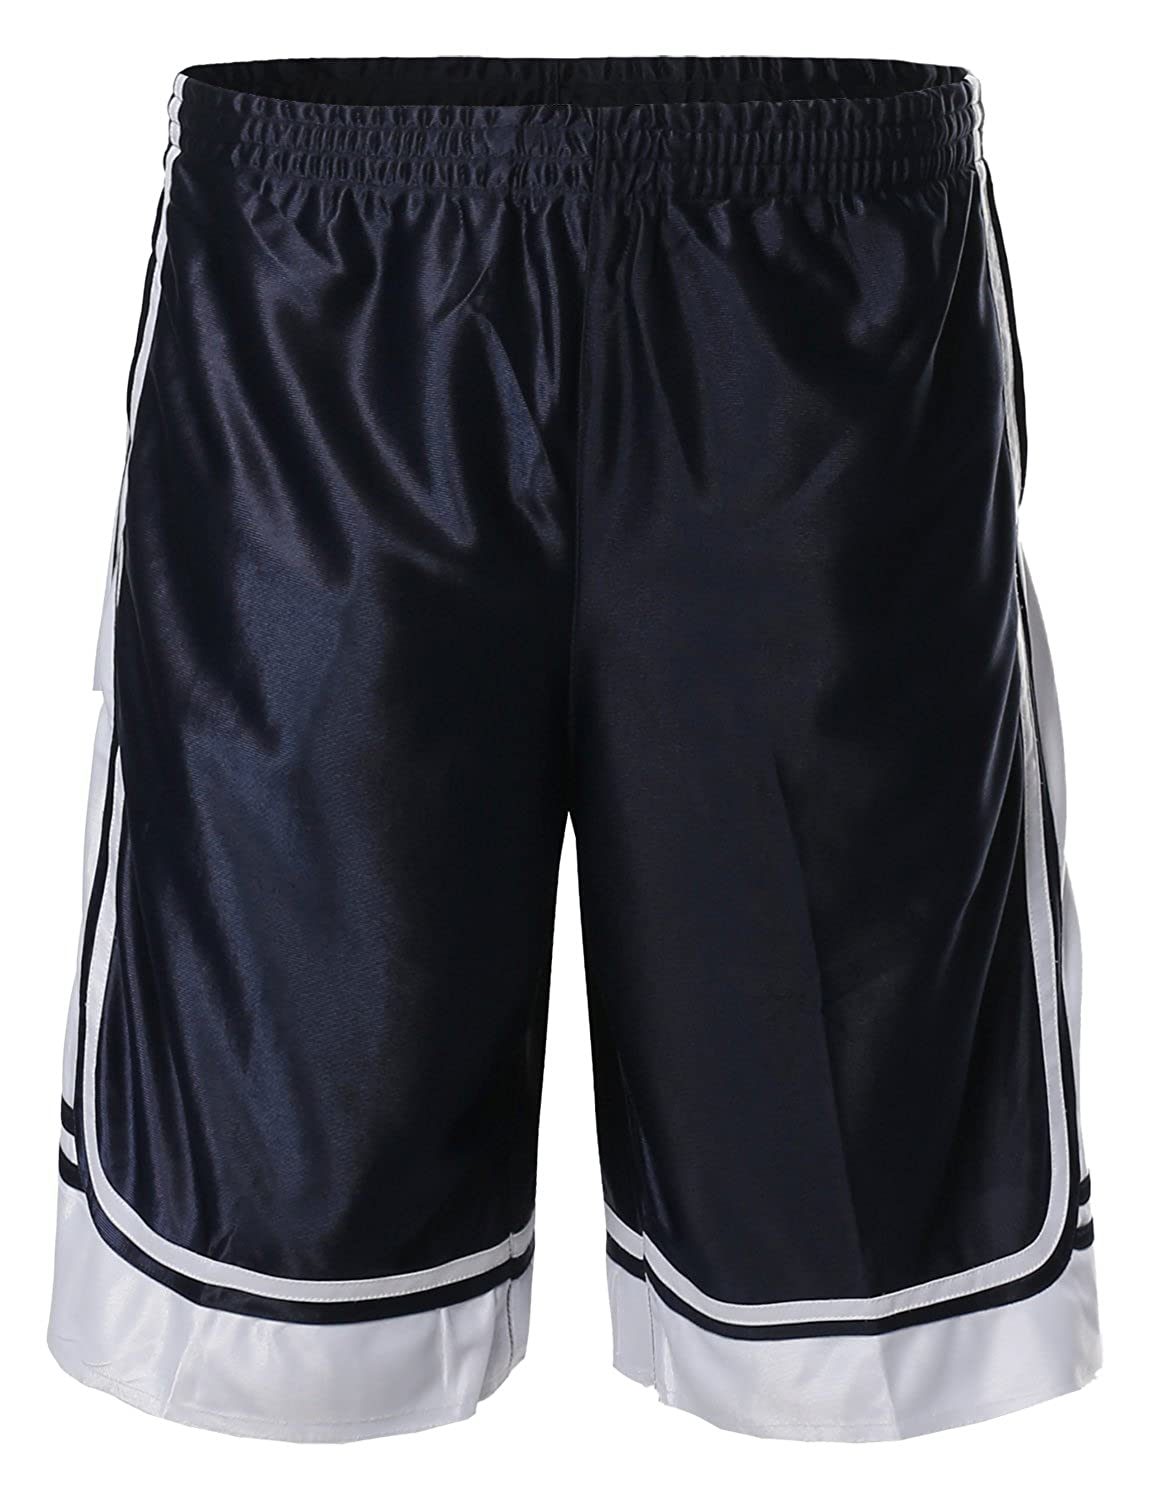 Fsmpts0001 Navy White Large Style by William SBW Men's Athletic Double Layer Drawcord Mesh Shorts S5XL